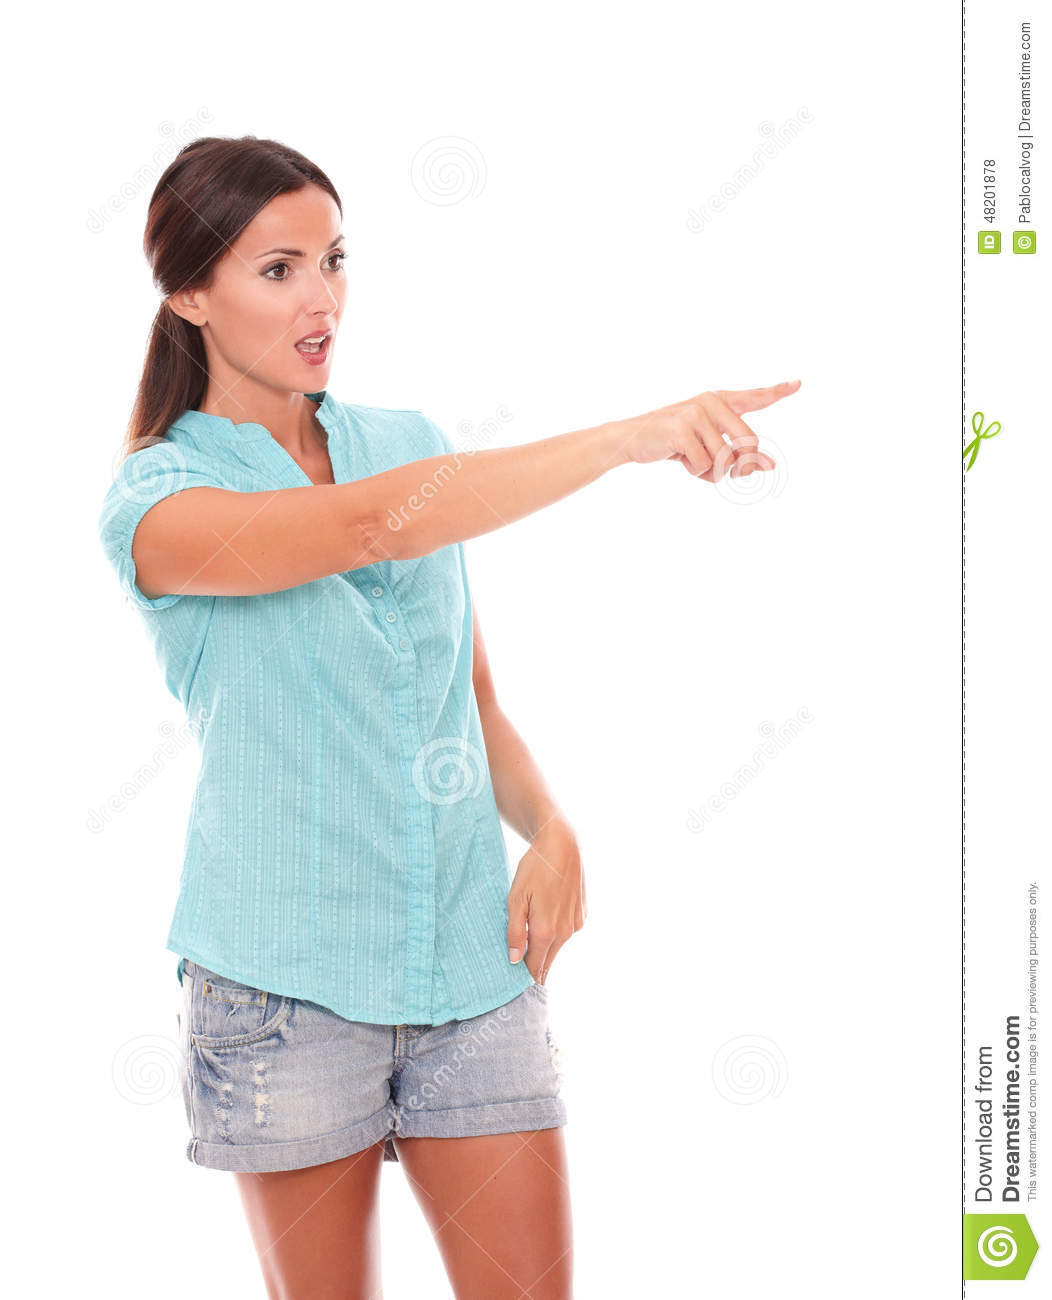 Single woman in short jeans pointing to her left